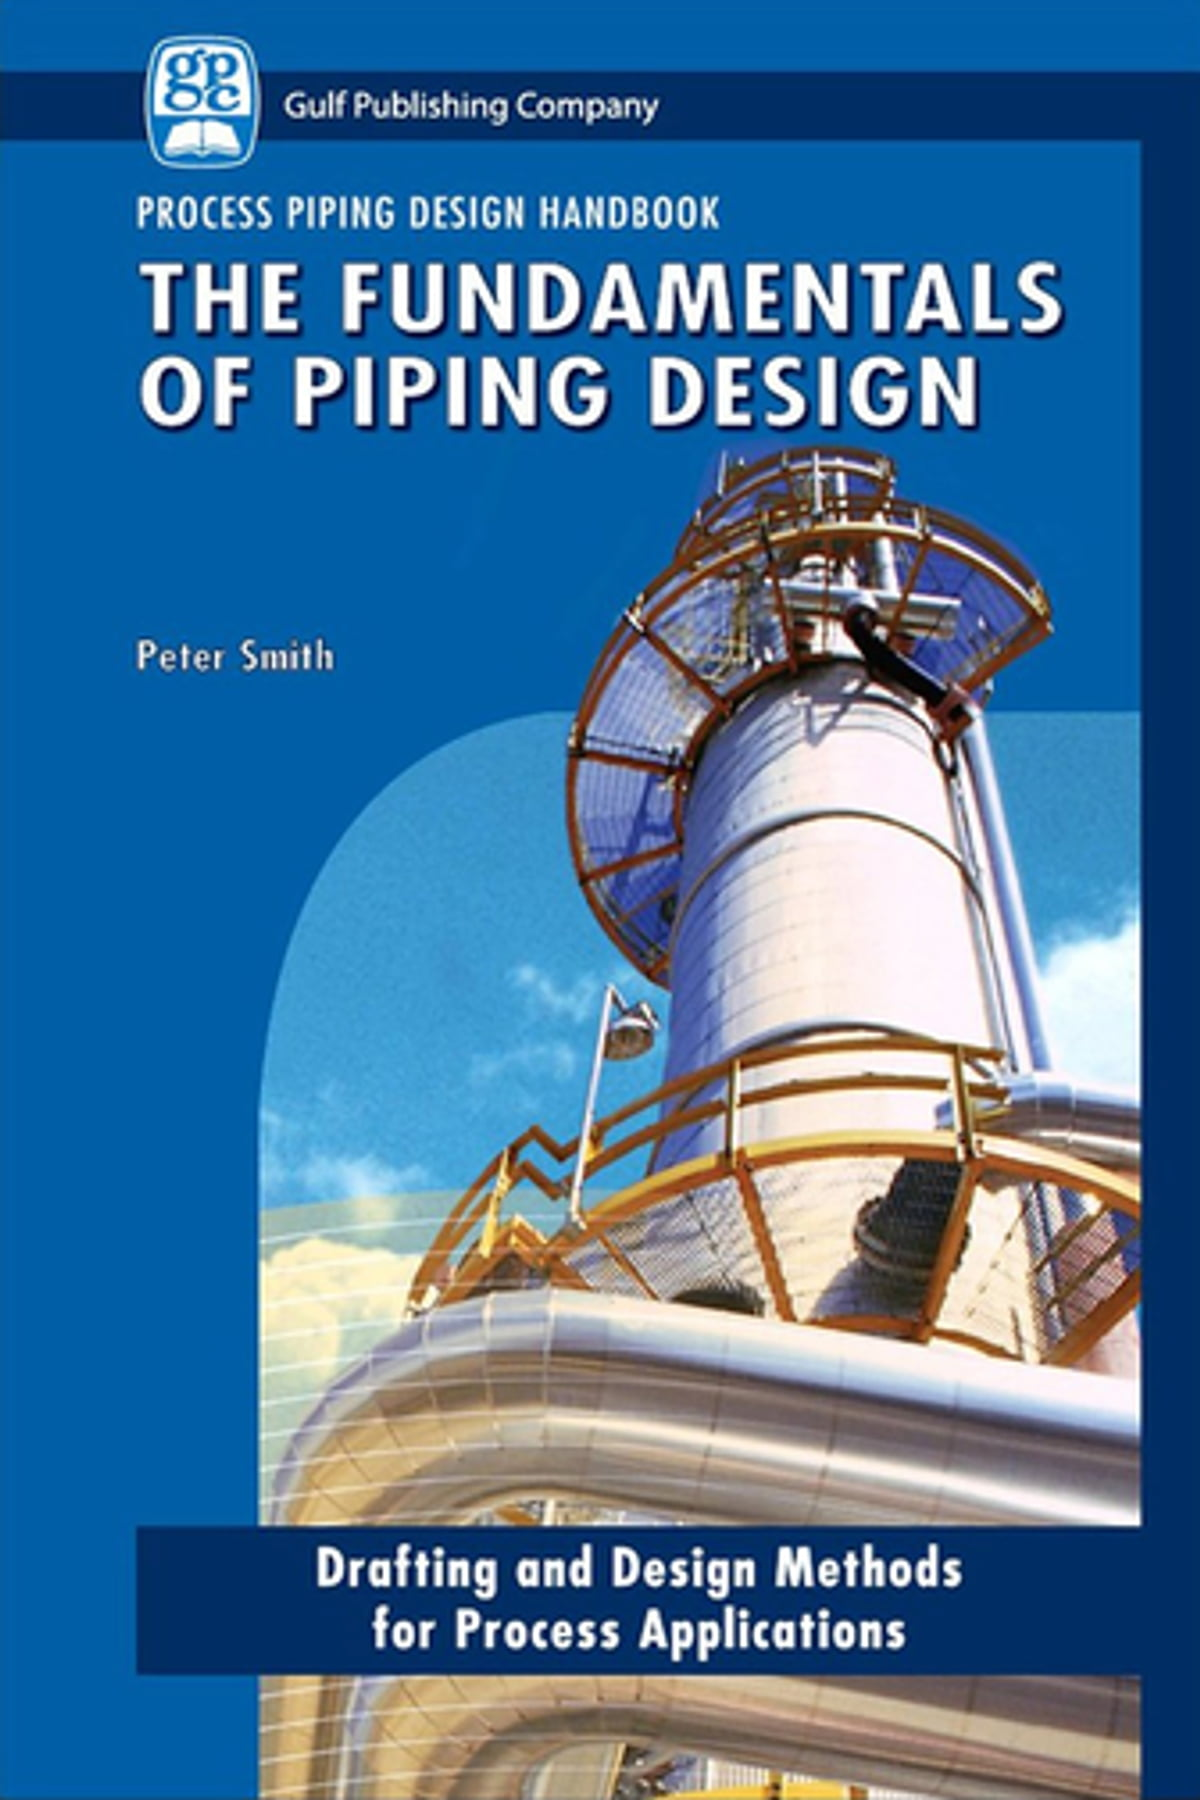 The Fundamentals Of Piping Design Ebook By Peter Smith Layout Rules 9780127999791 Rakuten Kobo